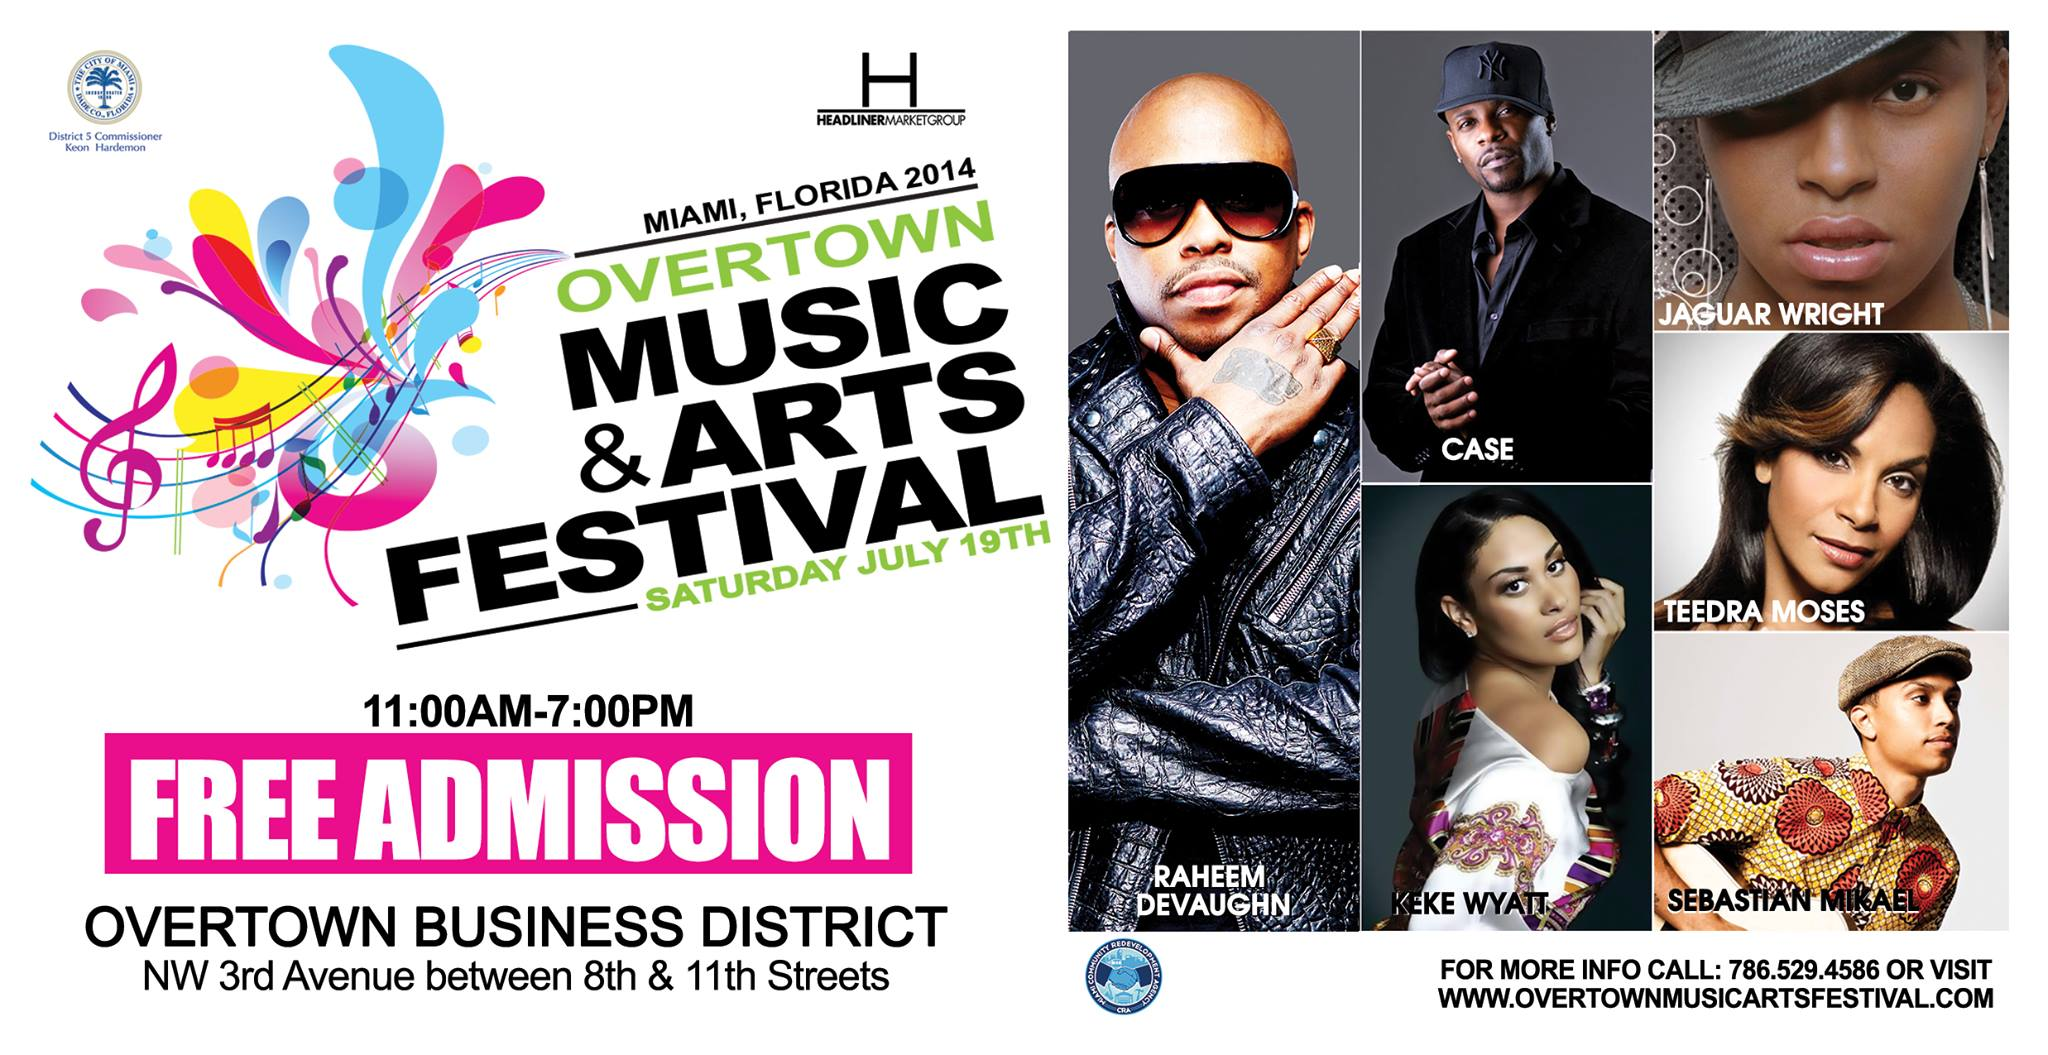 Overtown Music & Arts Festival - 2014